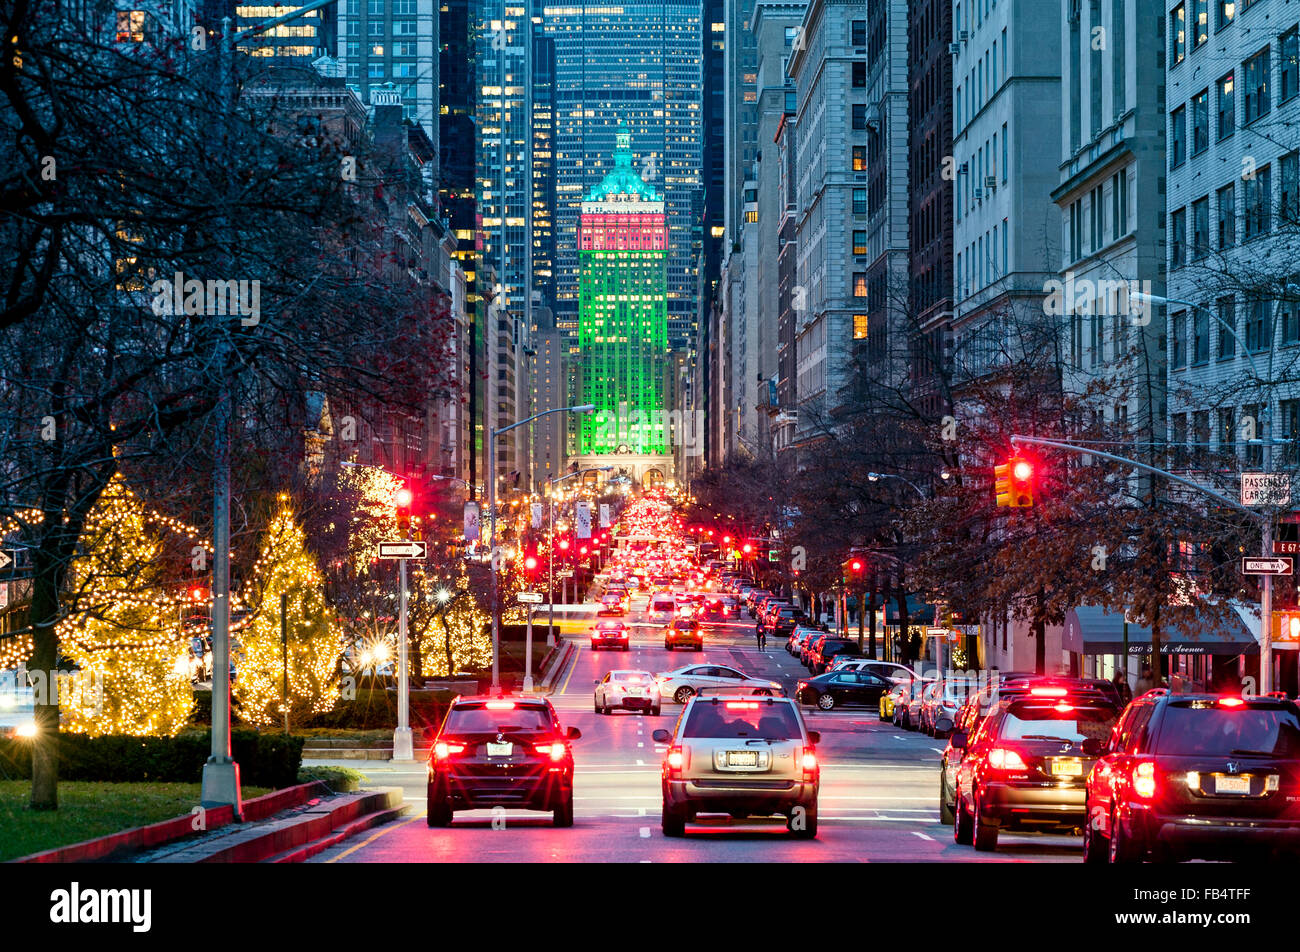 Exceptional New York Christmas New York Streets Park Avenue New York City Christmas  Decorations Christmas Trees Traffic